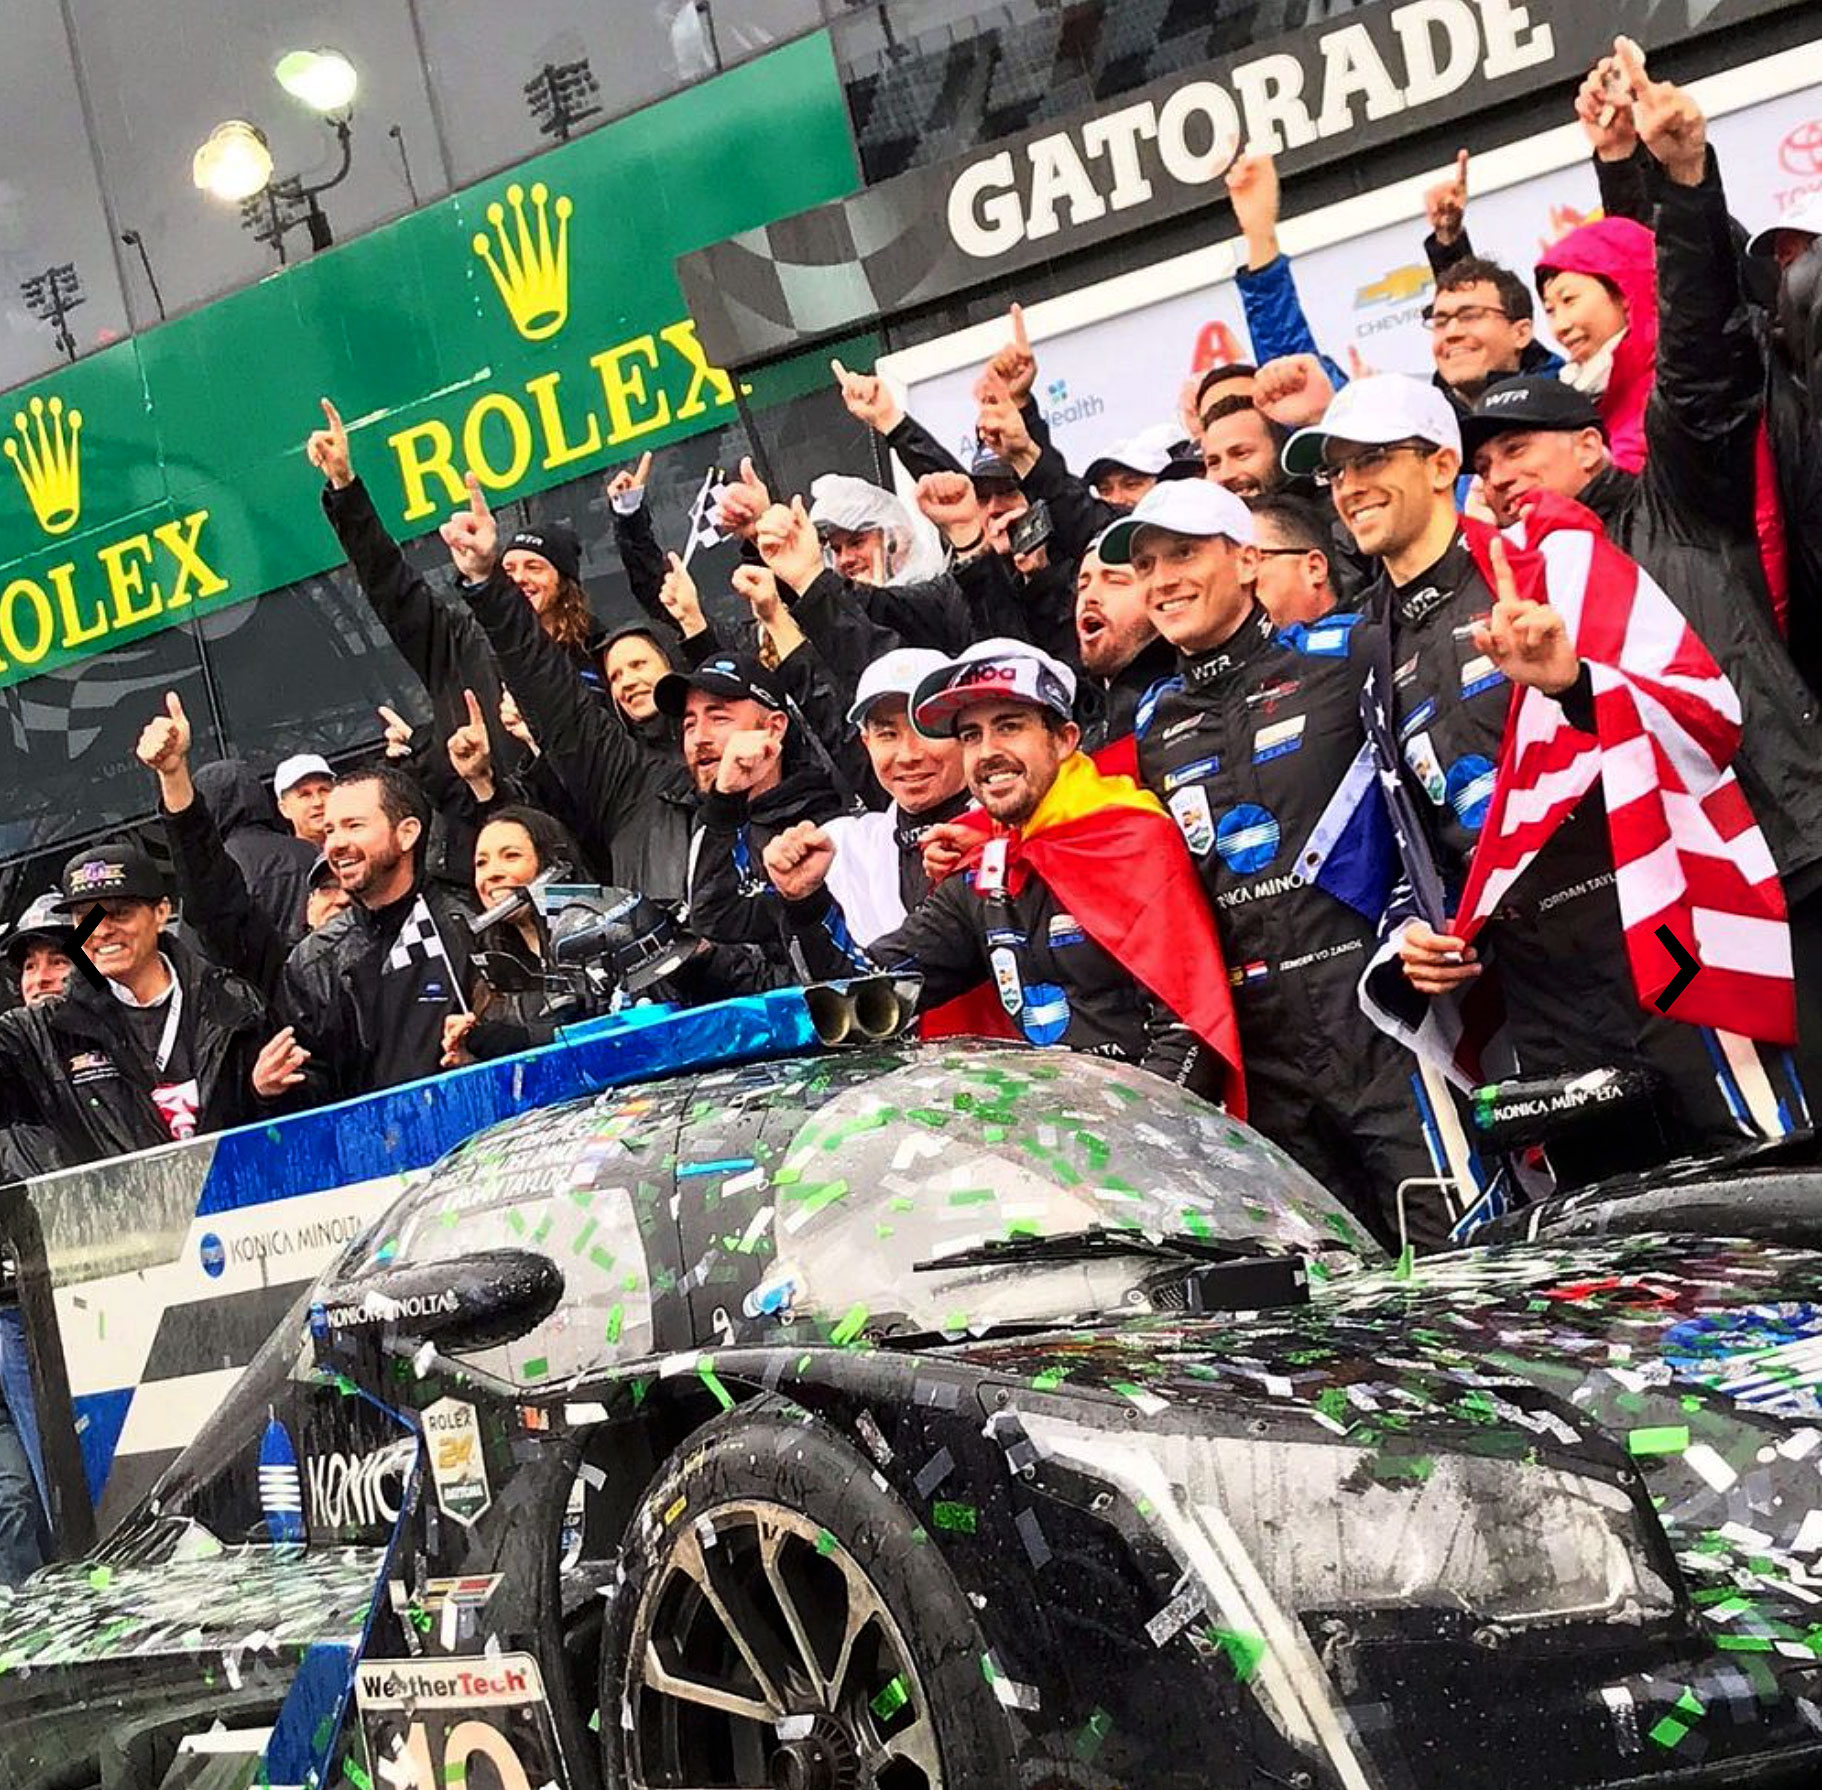 03aa66fa134 In the photo below we see the winning team of the IMSA 24 hour race. From  left to right we see, Kamui Kobayashi of Japan, Jordan Taylor, Reneger Van  Ser ...